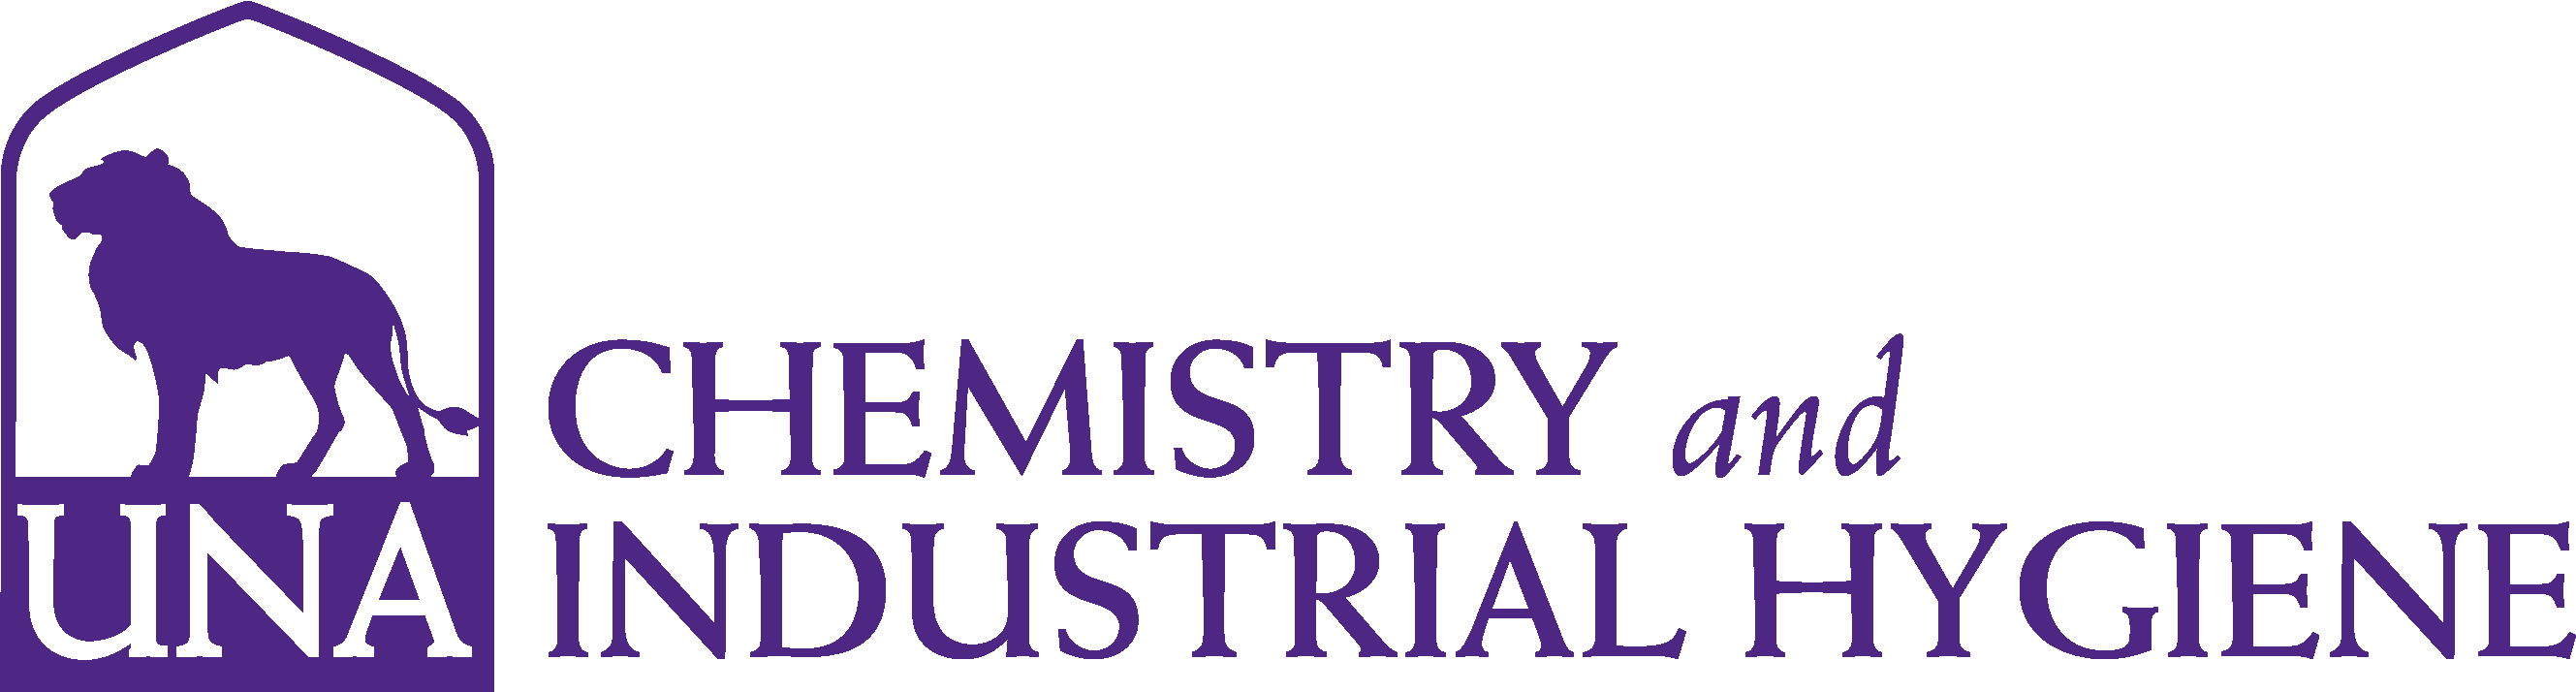 College of Arts and Sciences - Chemistry Logo - Purple - Version 3